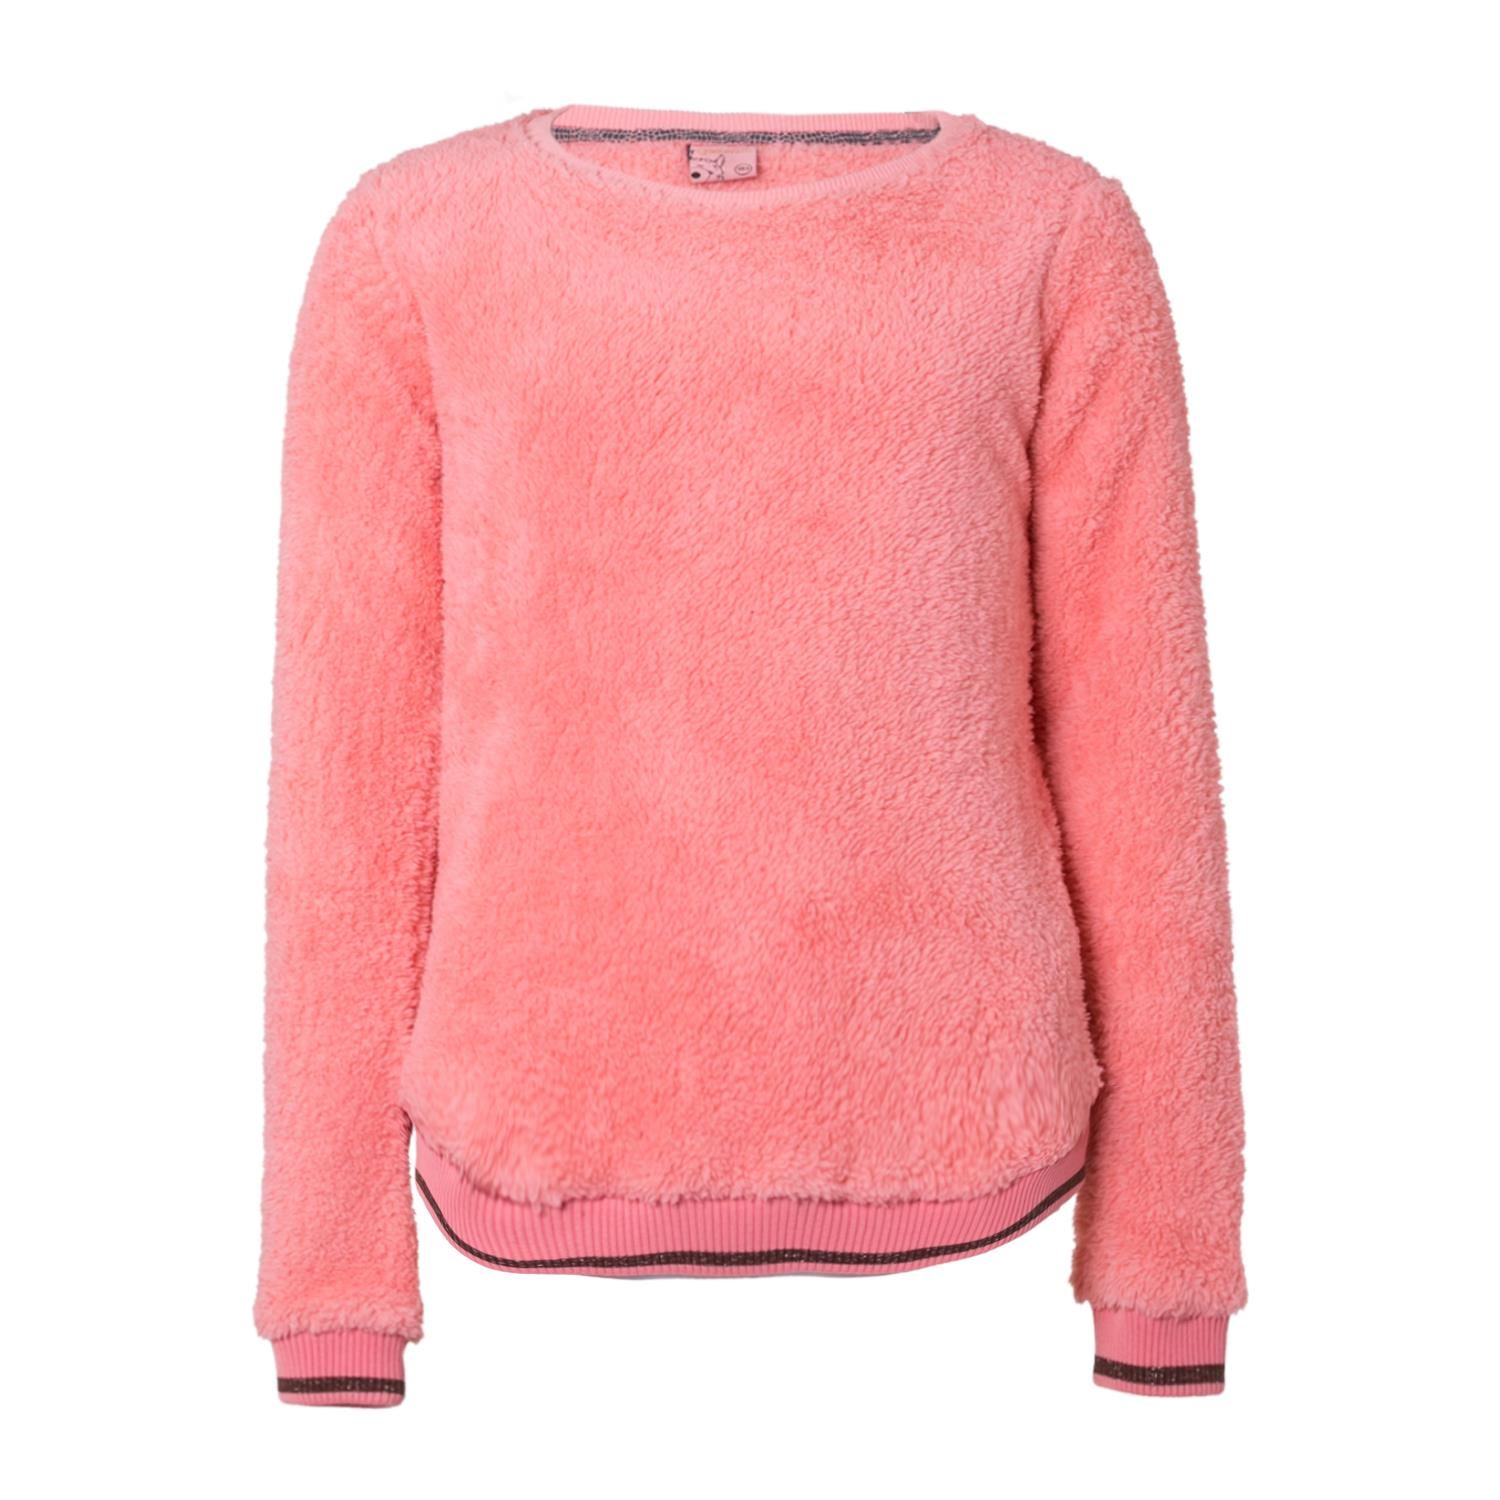 Brunotti Skyaway JR Girls Fleece